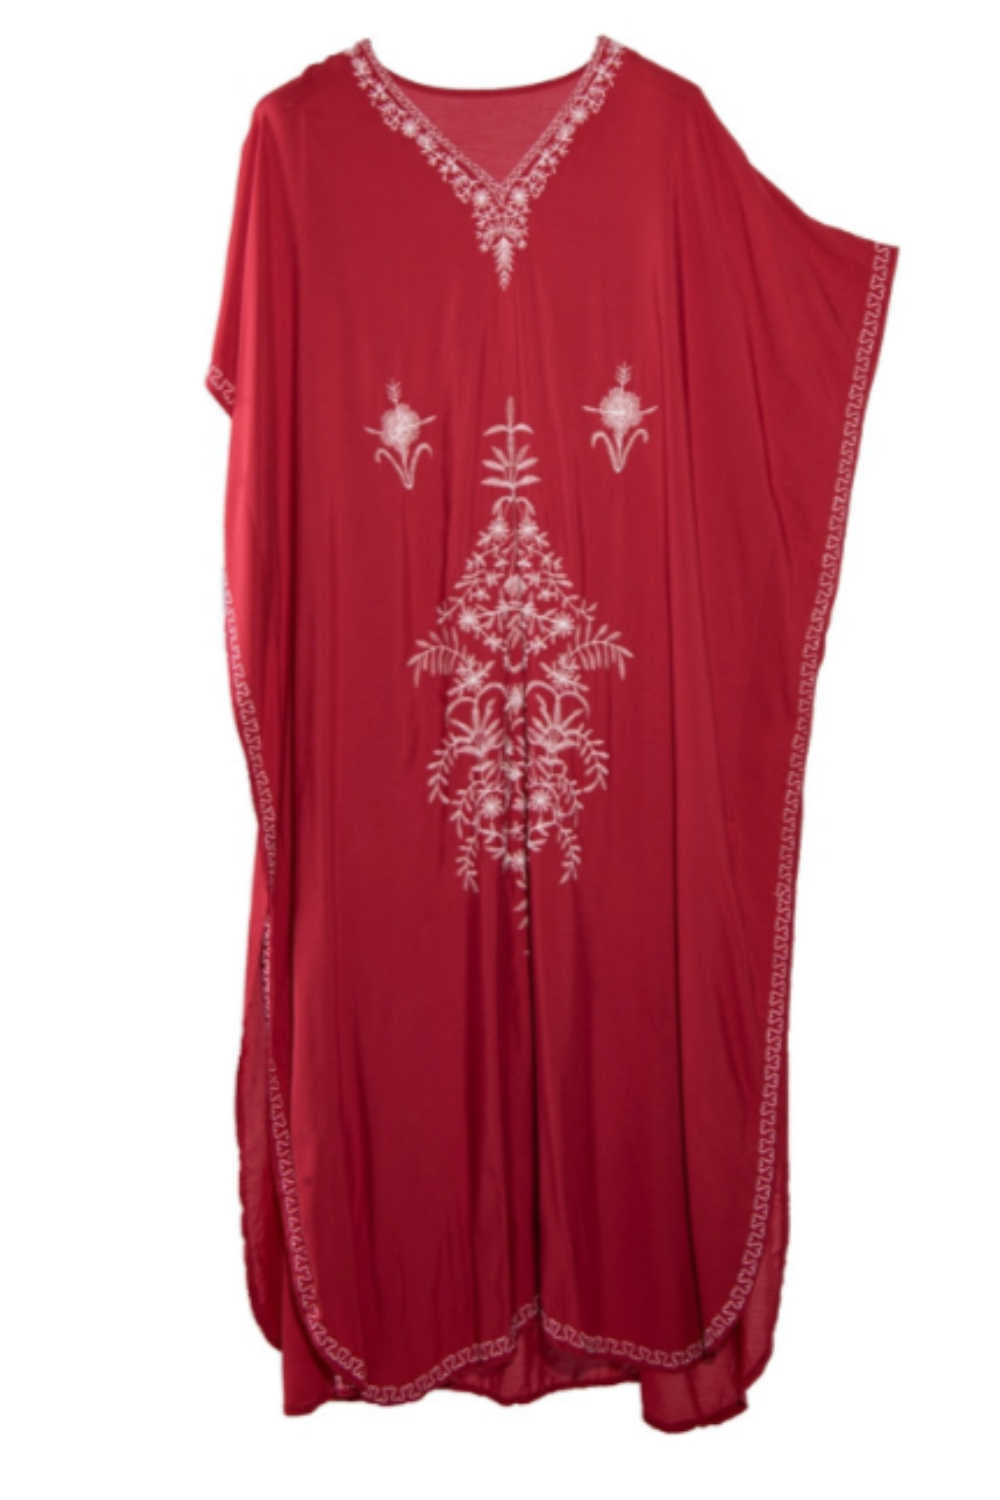 Kaftan-maxi-dress-plus-size-red-white-embroidery-embellishment